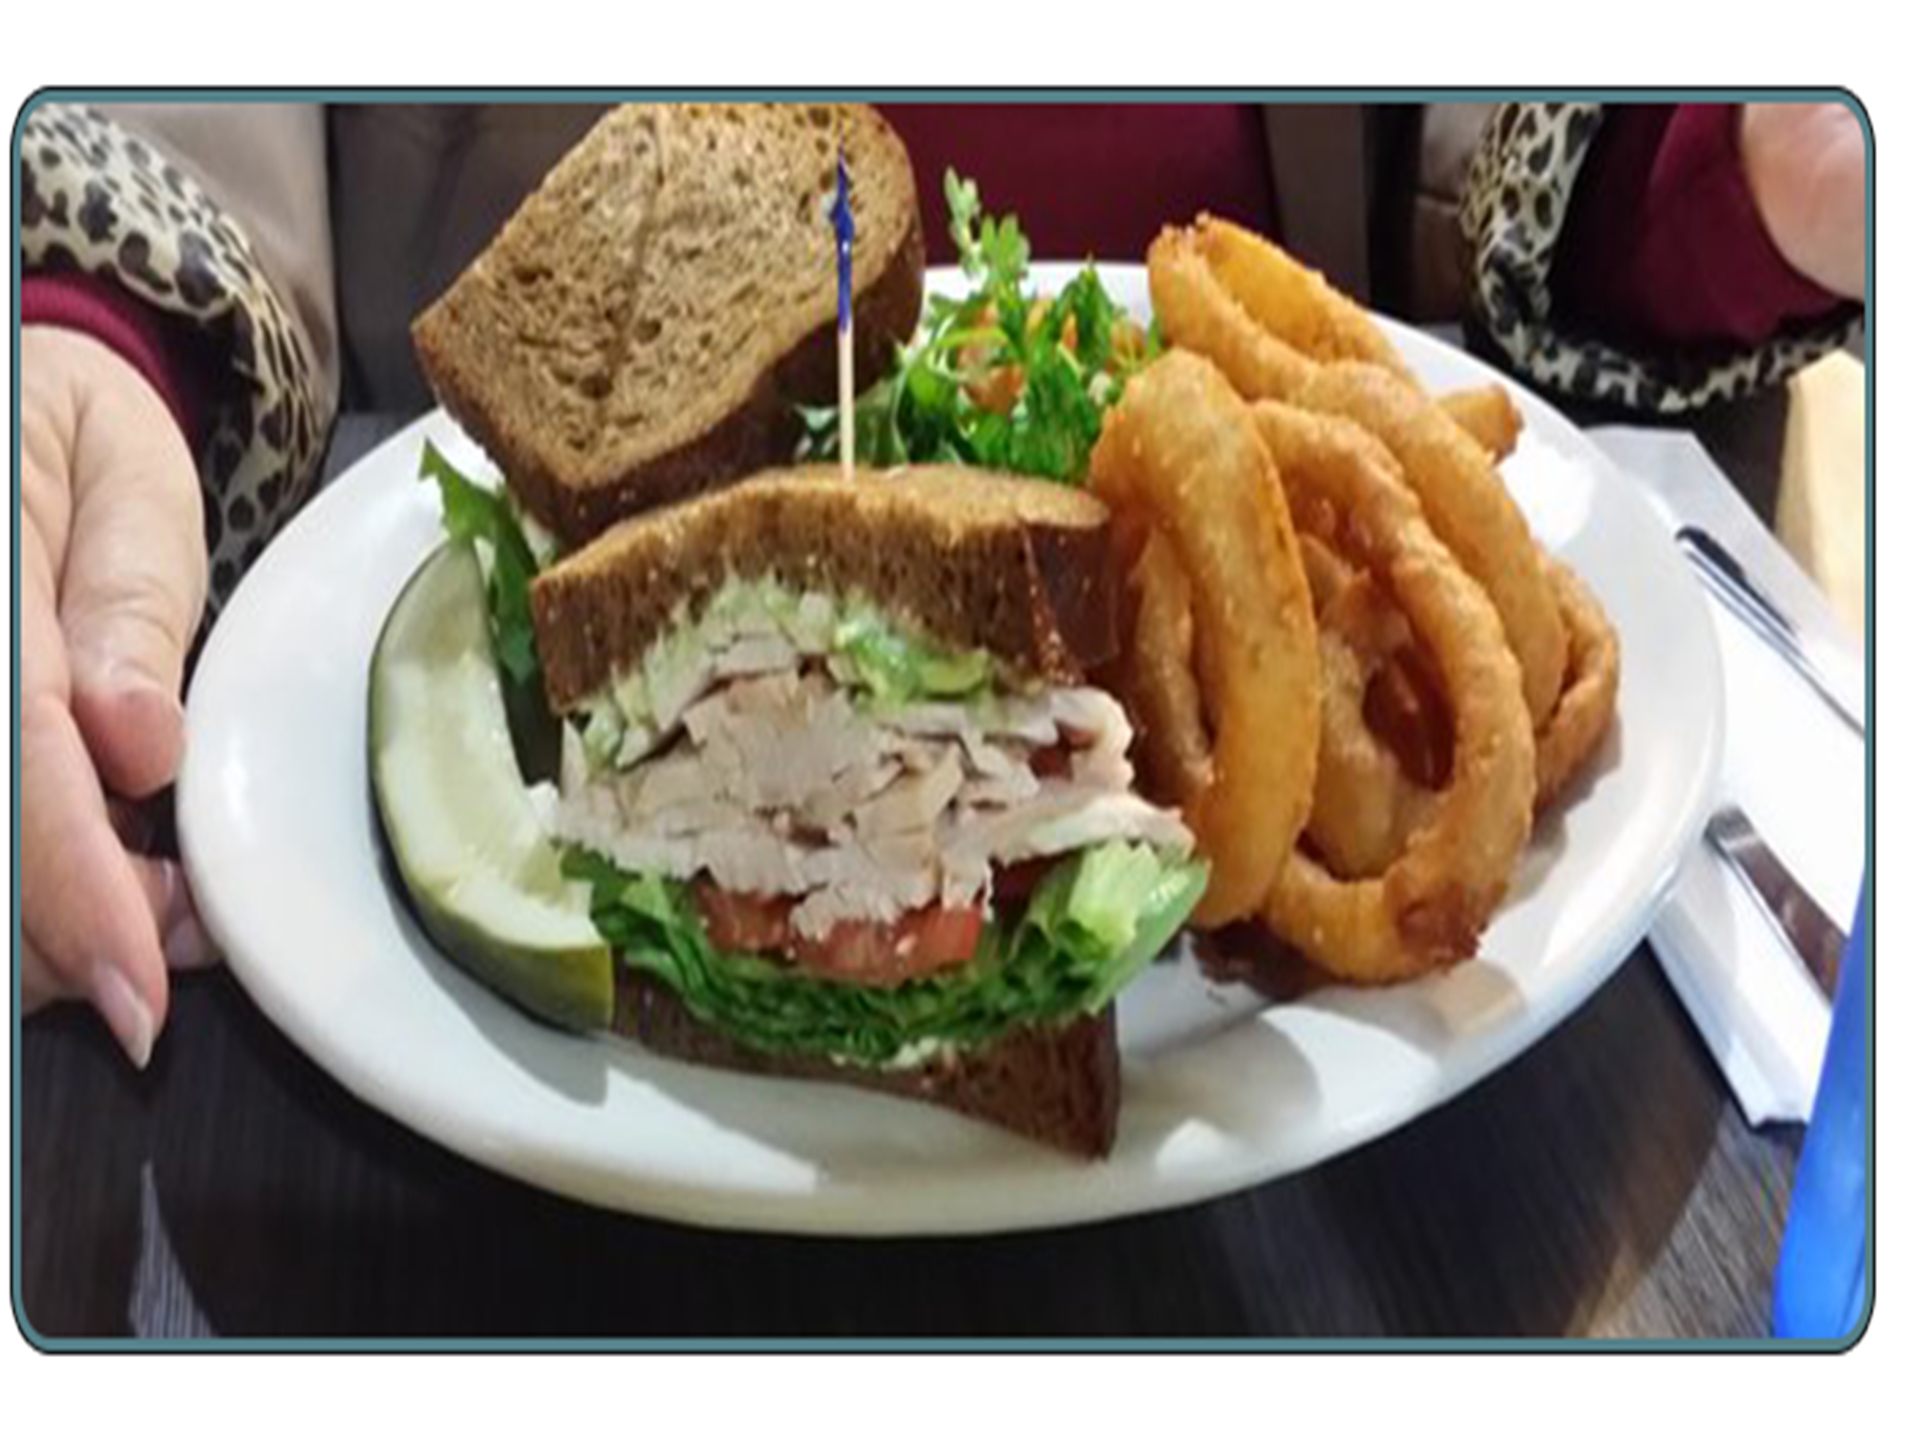 turkey sandwich with lettuce and tomato, onion rings and a pickle on the side